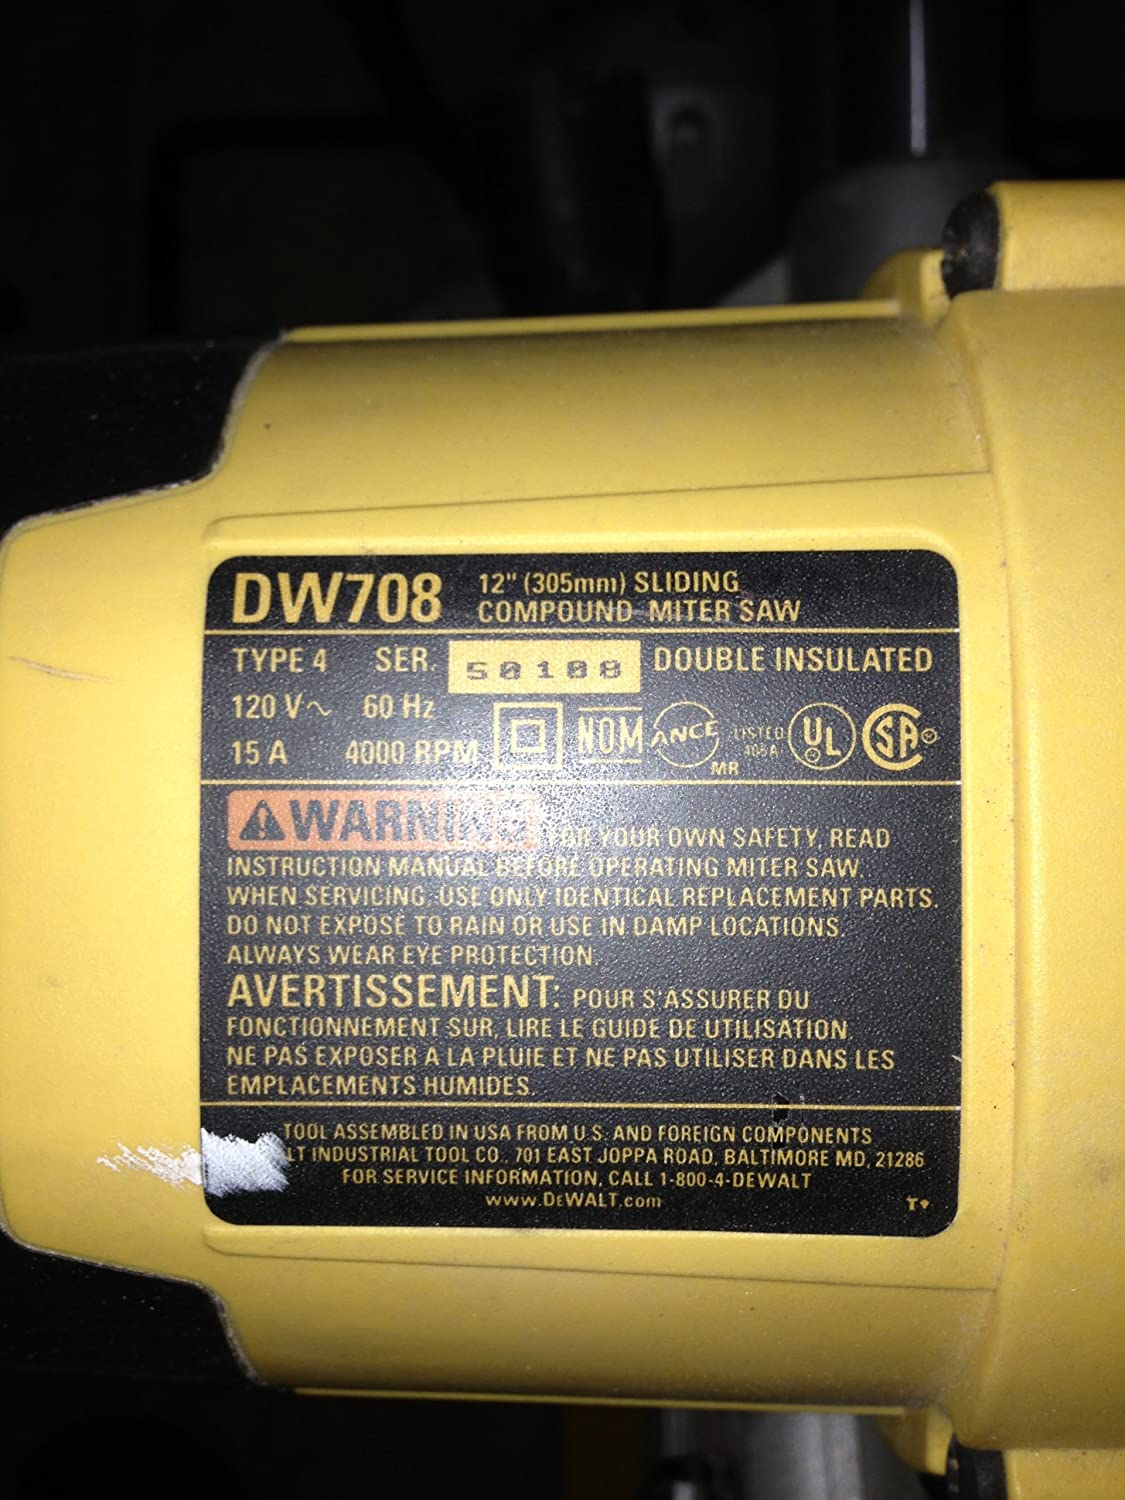 91fLt3pyTML._SL1500_ dewalt dw708 12 inch double bevel sliding compound miter saw Transformer Grounding Diagrams at bayanpartner.co